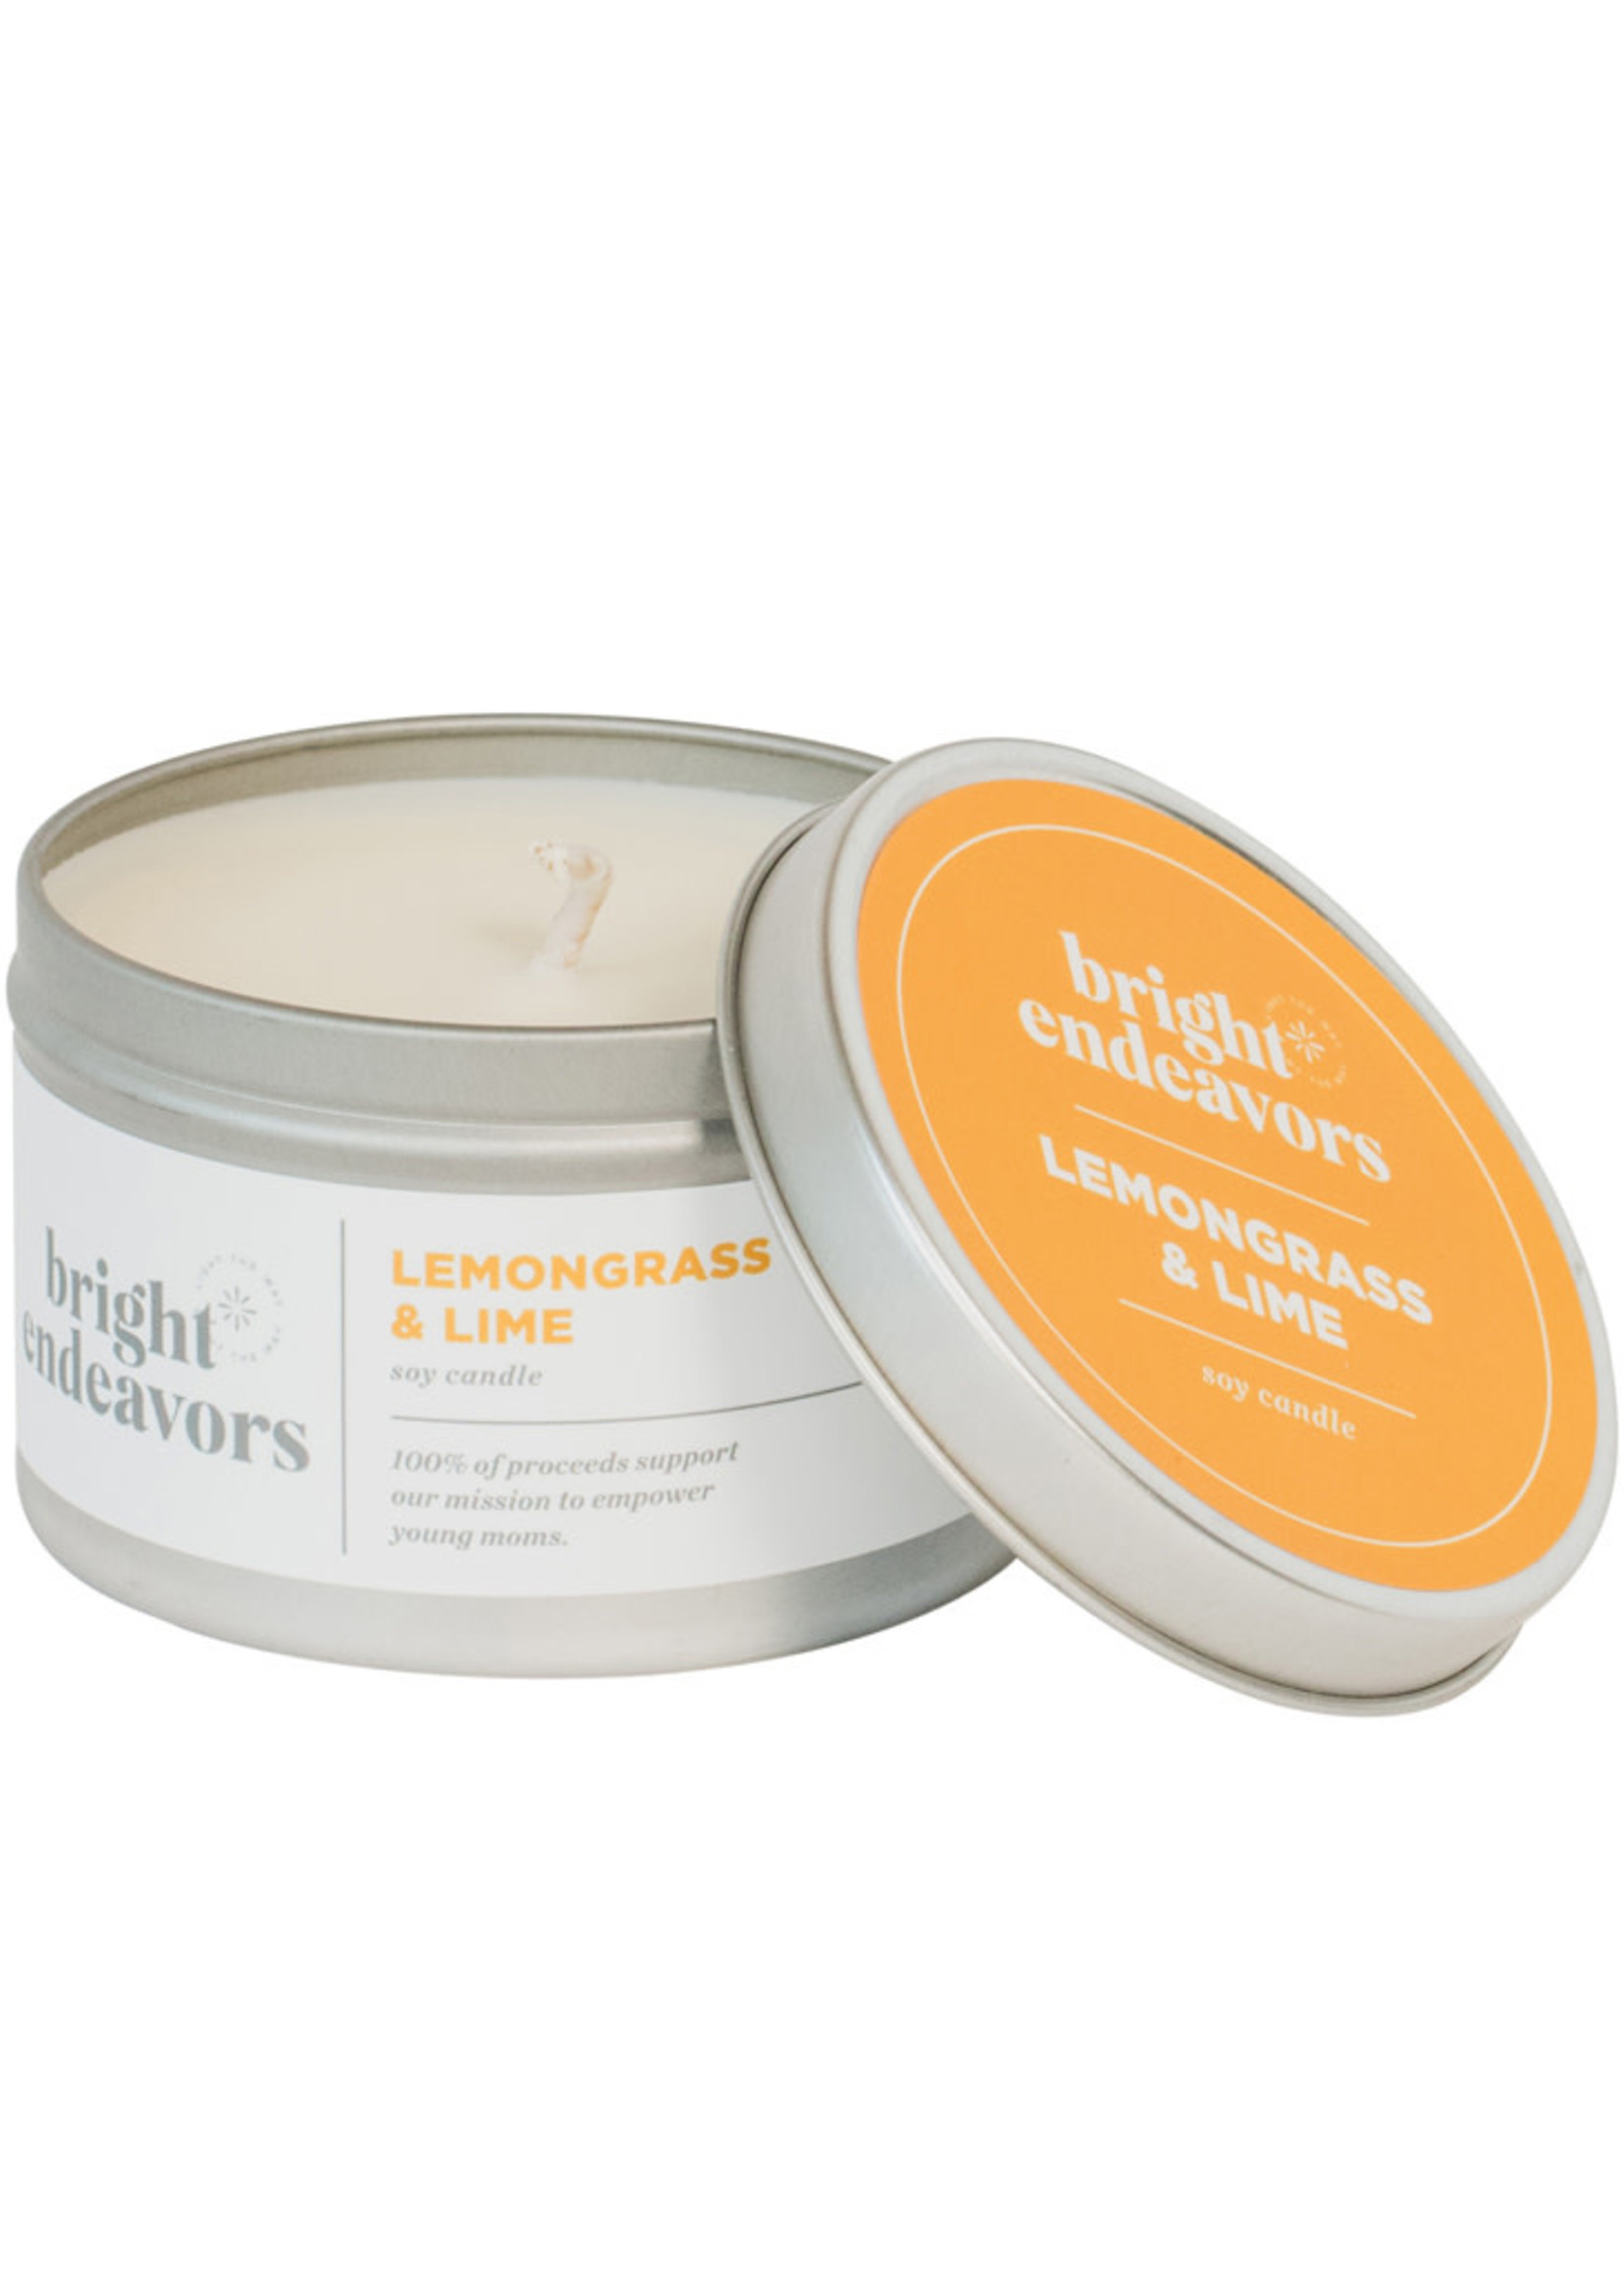 Bright Endeavors Lemongrass & Lime Soy Candle